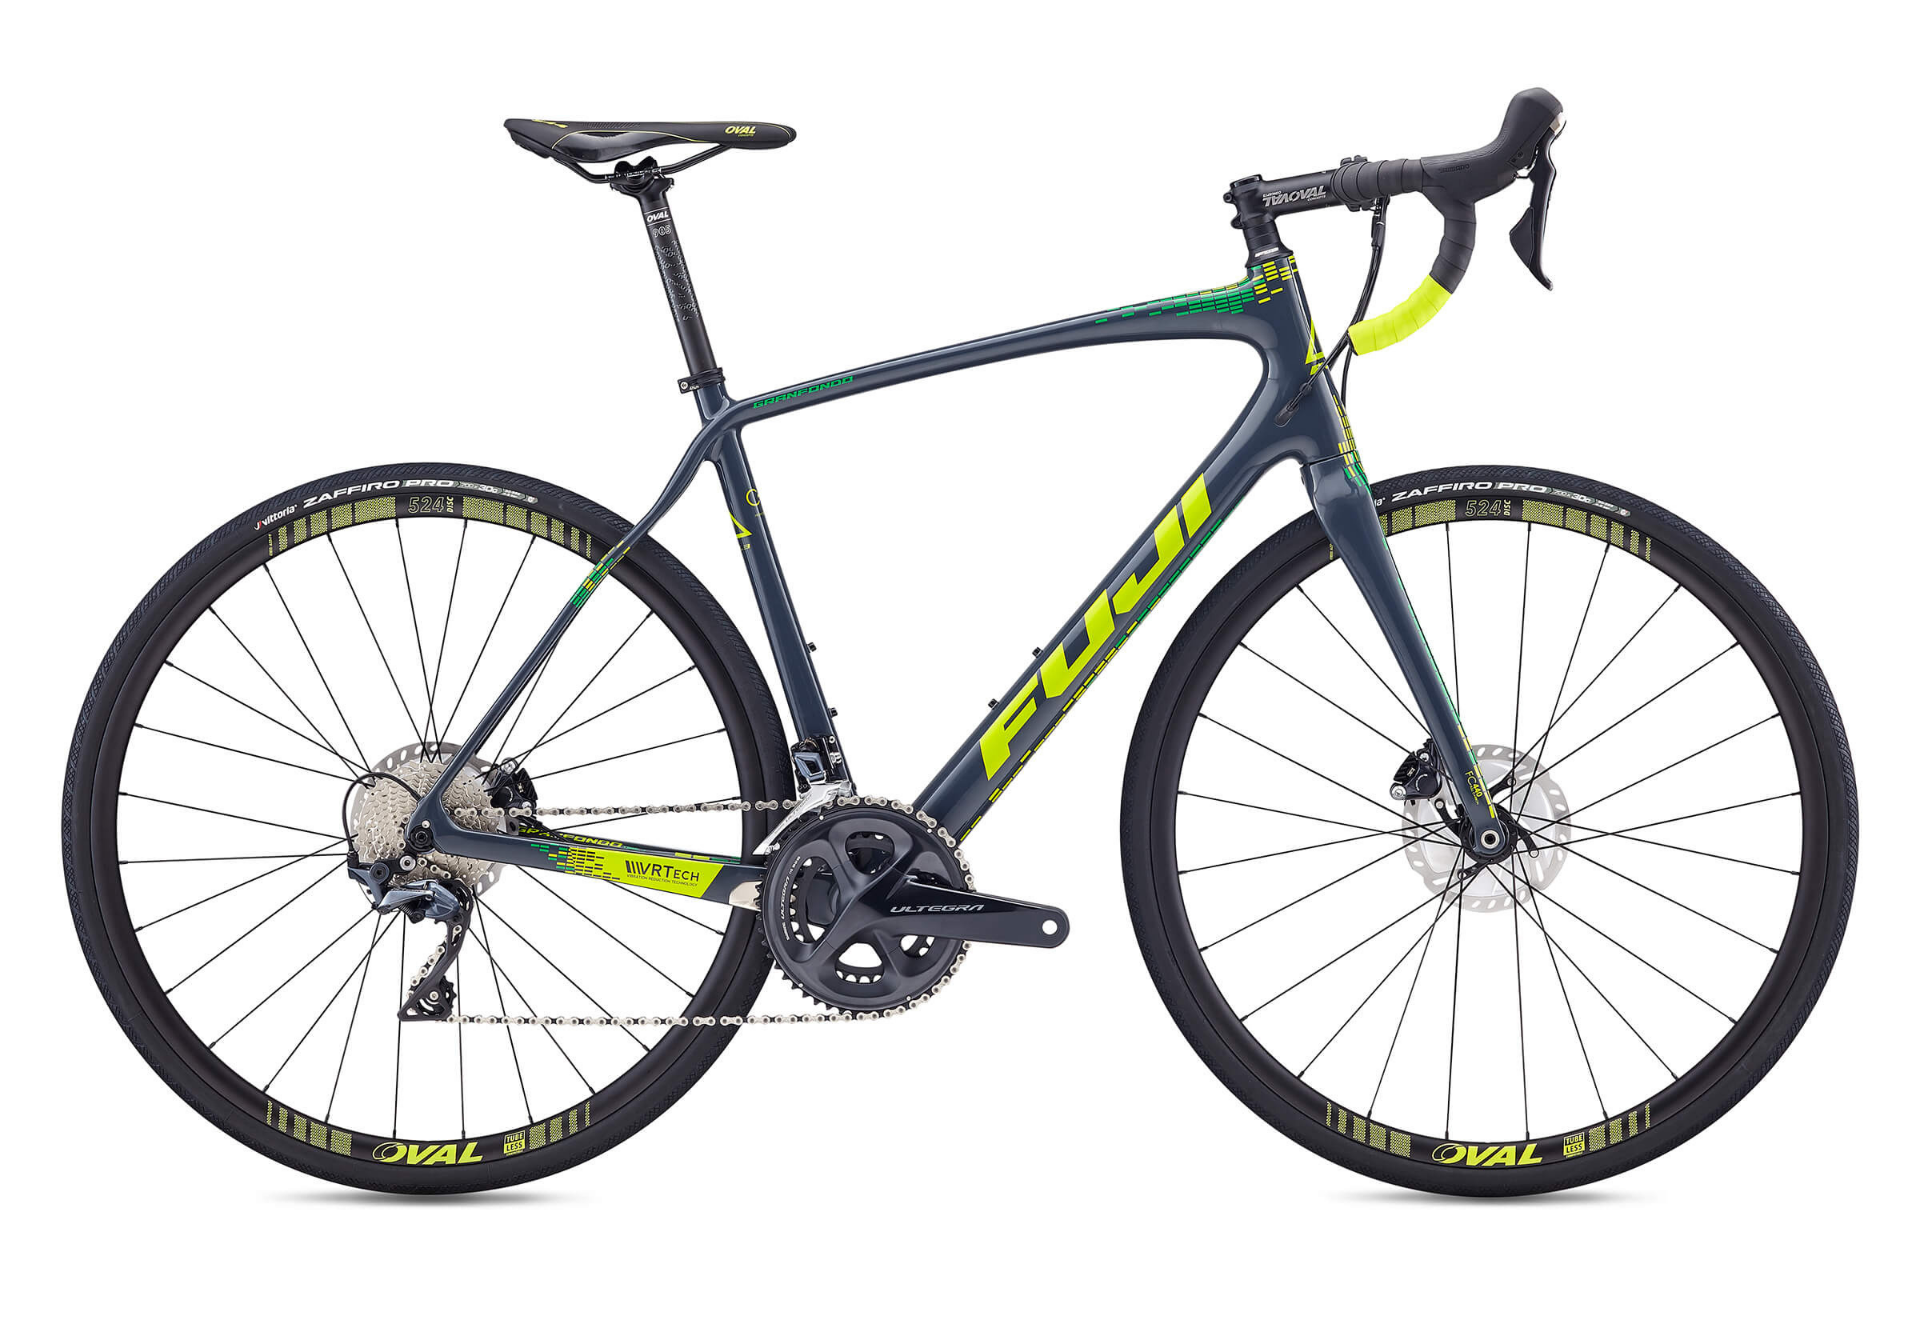 Road Bike Rental - San Diego, United States